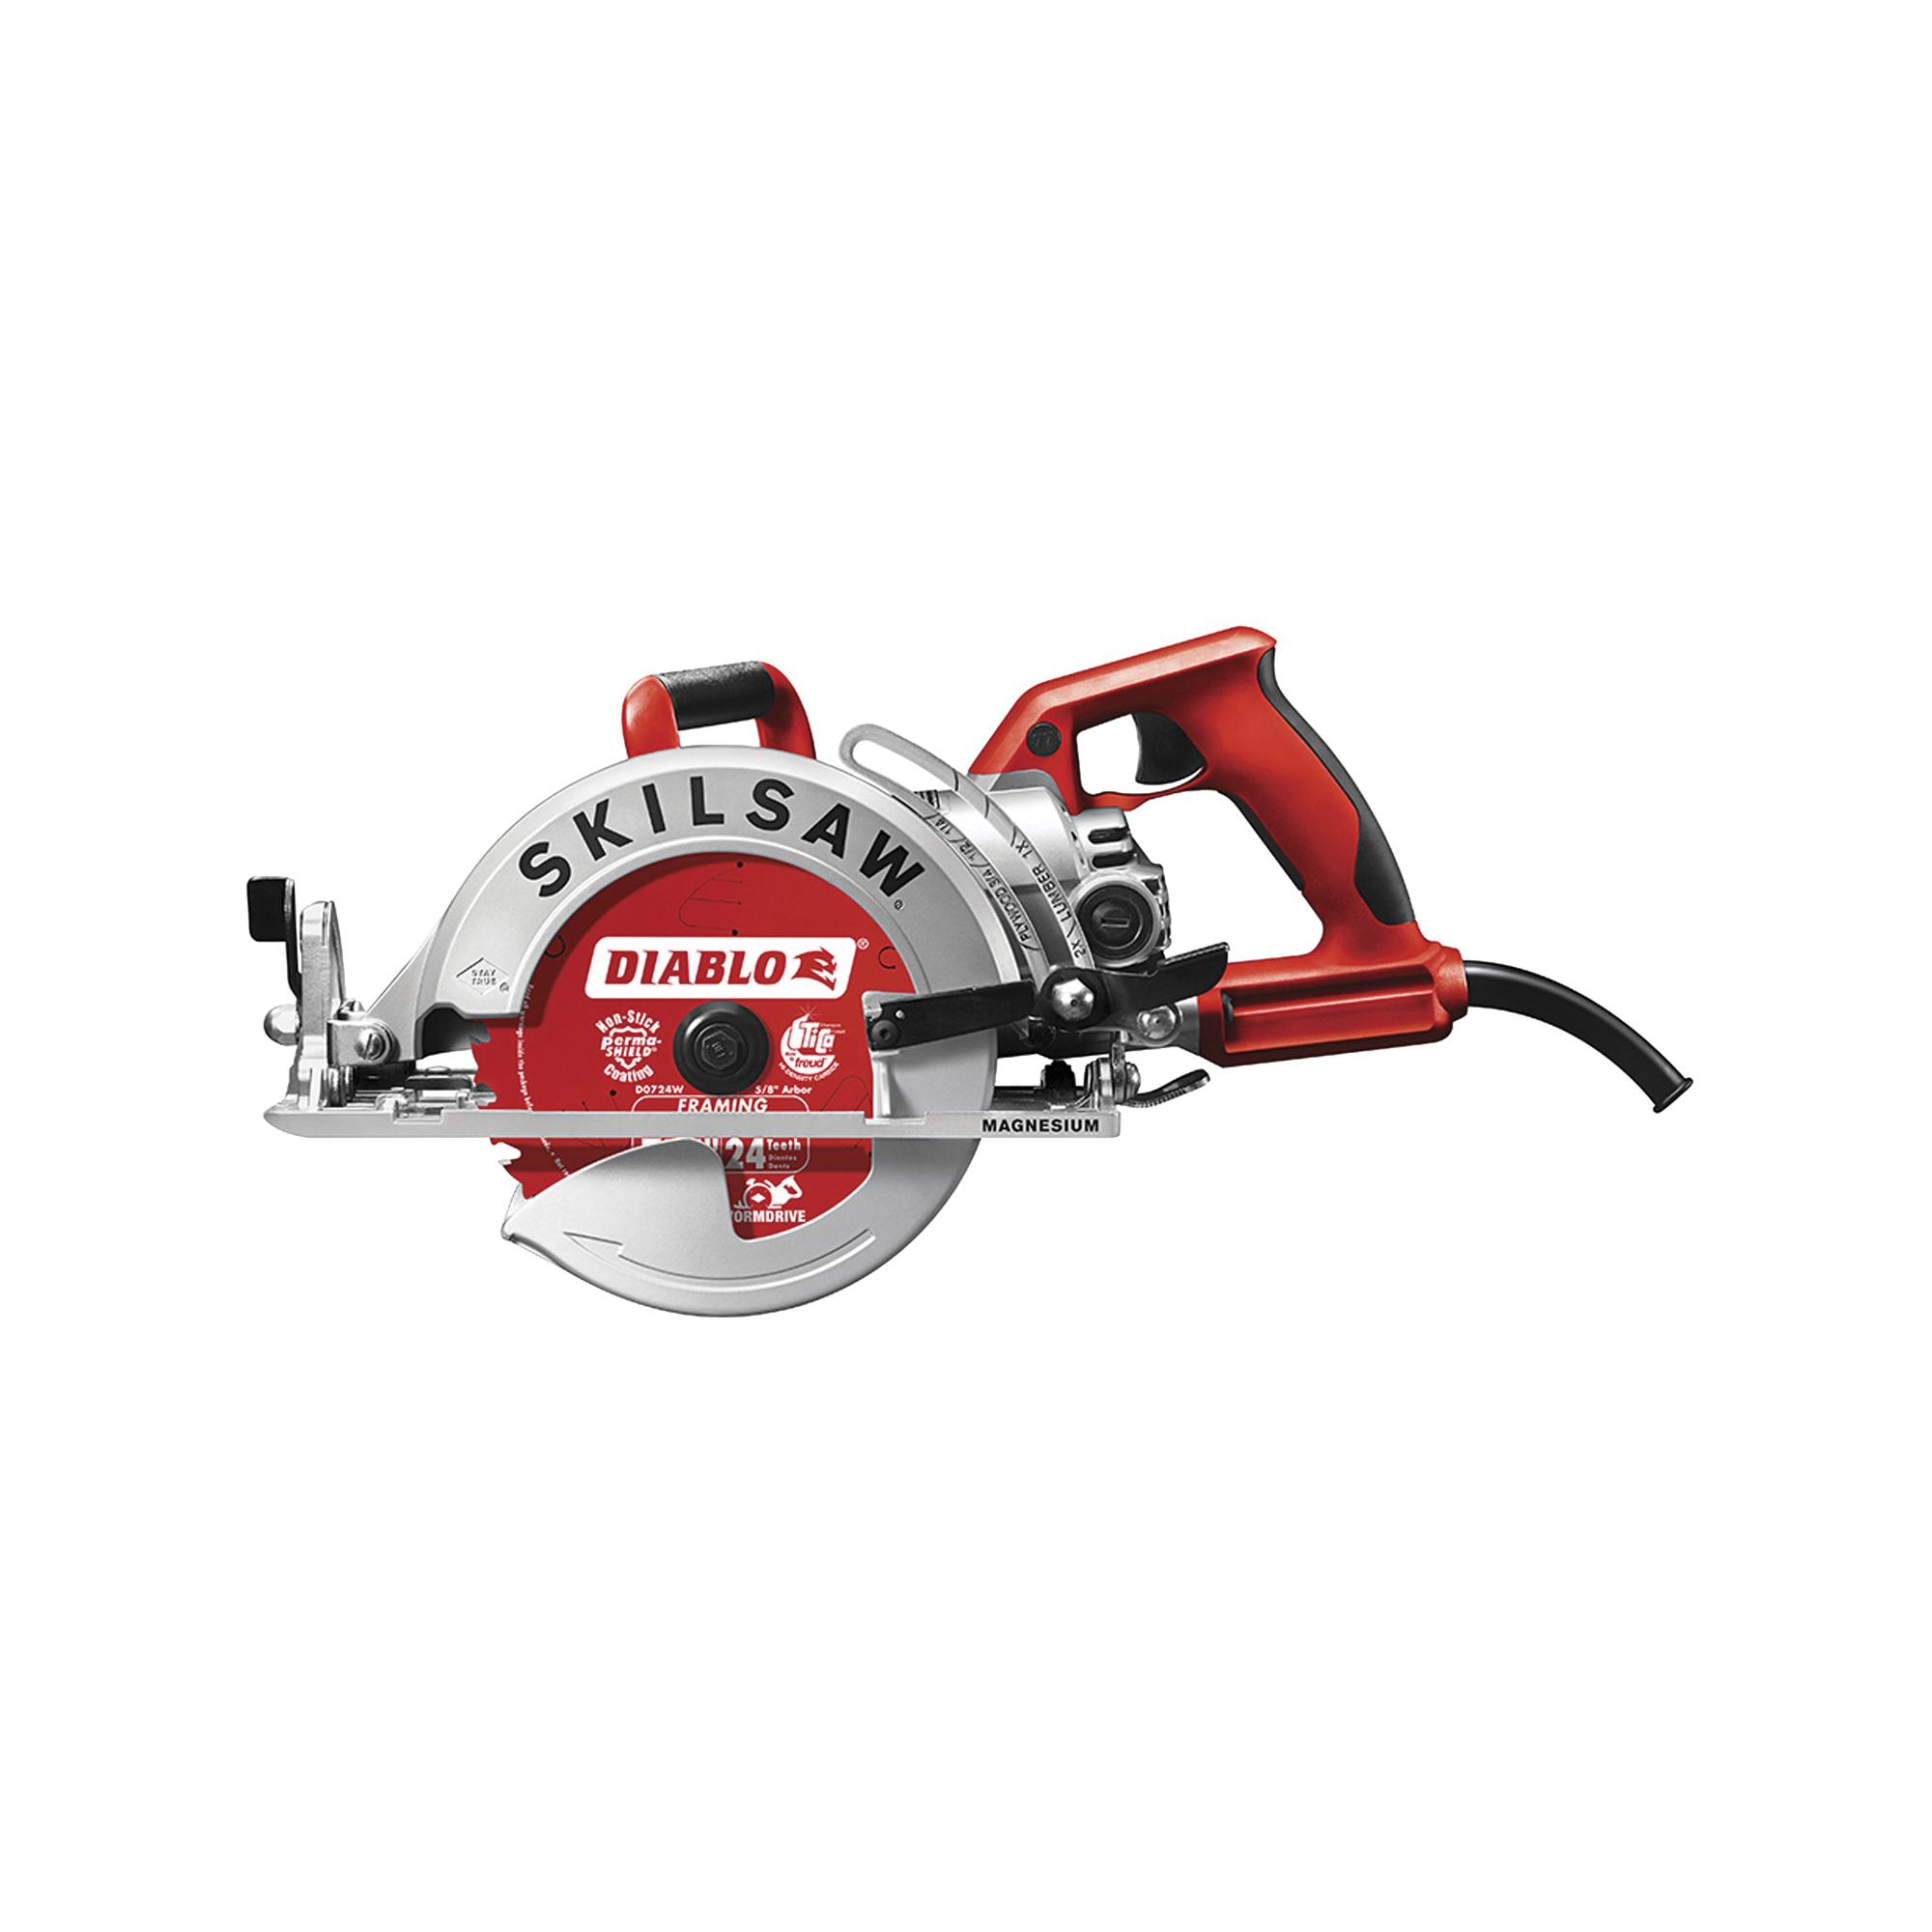 Picture of SKIL SPT77WML-22 Circular Saw, 120 V, 15 A, 1800 W, 7-1/4 in Dia Blade, 13/16 in Arbor, 53 deg Bevel